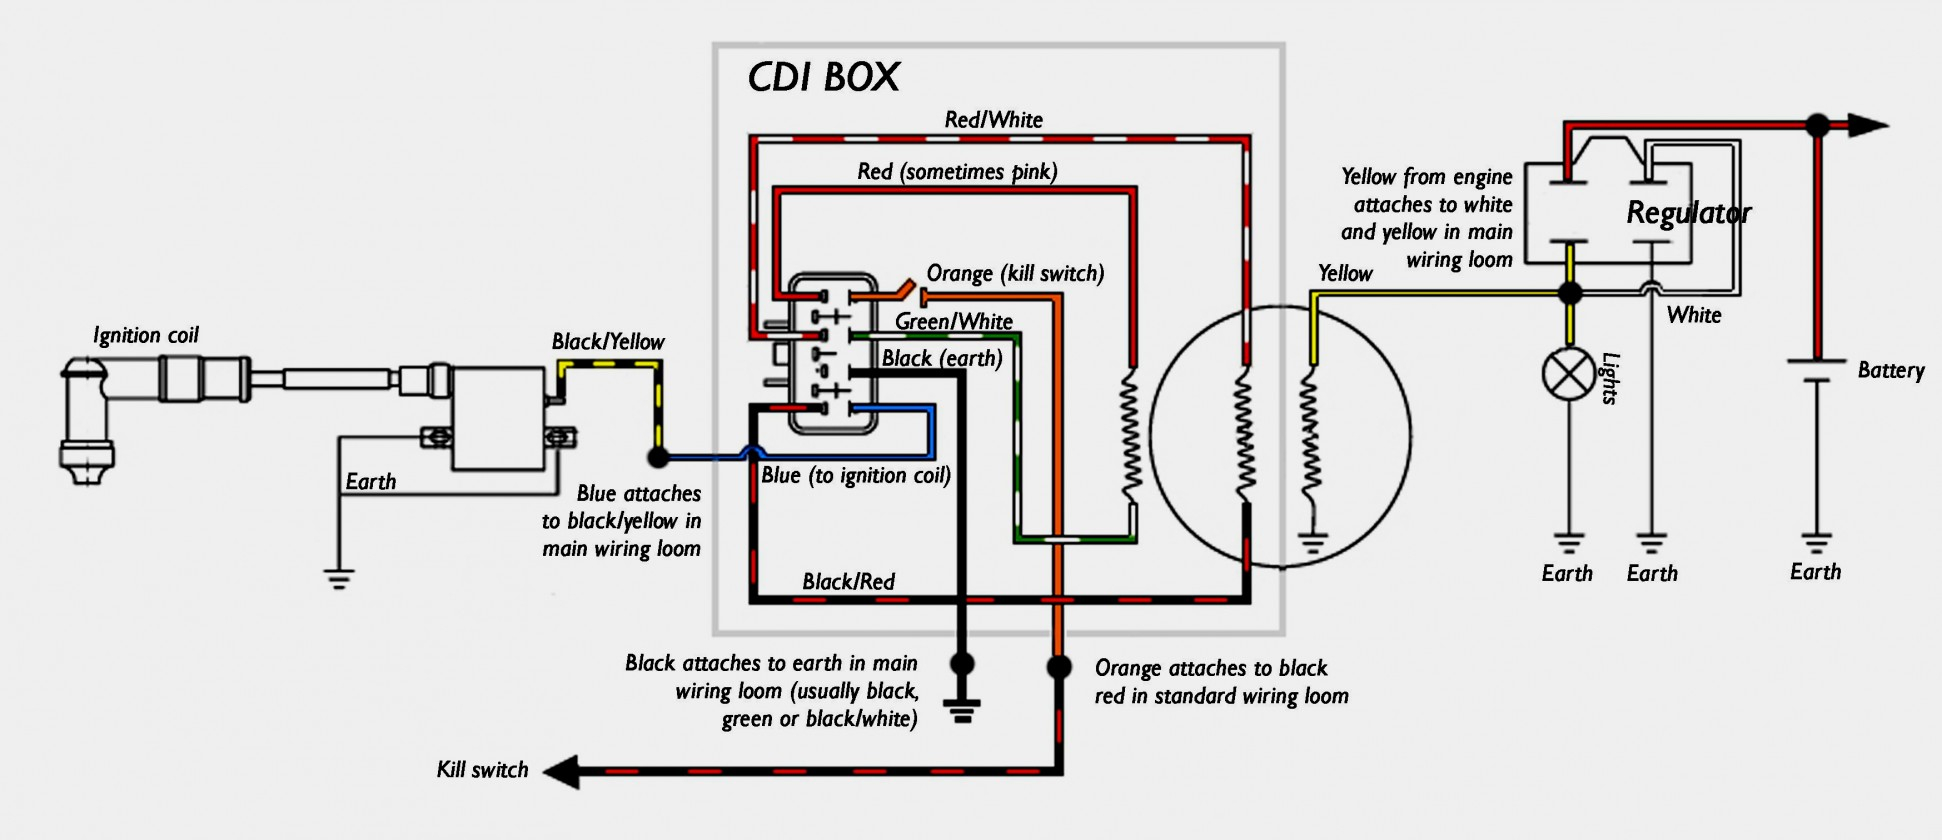 6 Pin Cdi Wiring Diagram